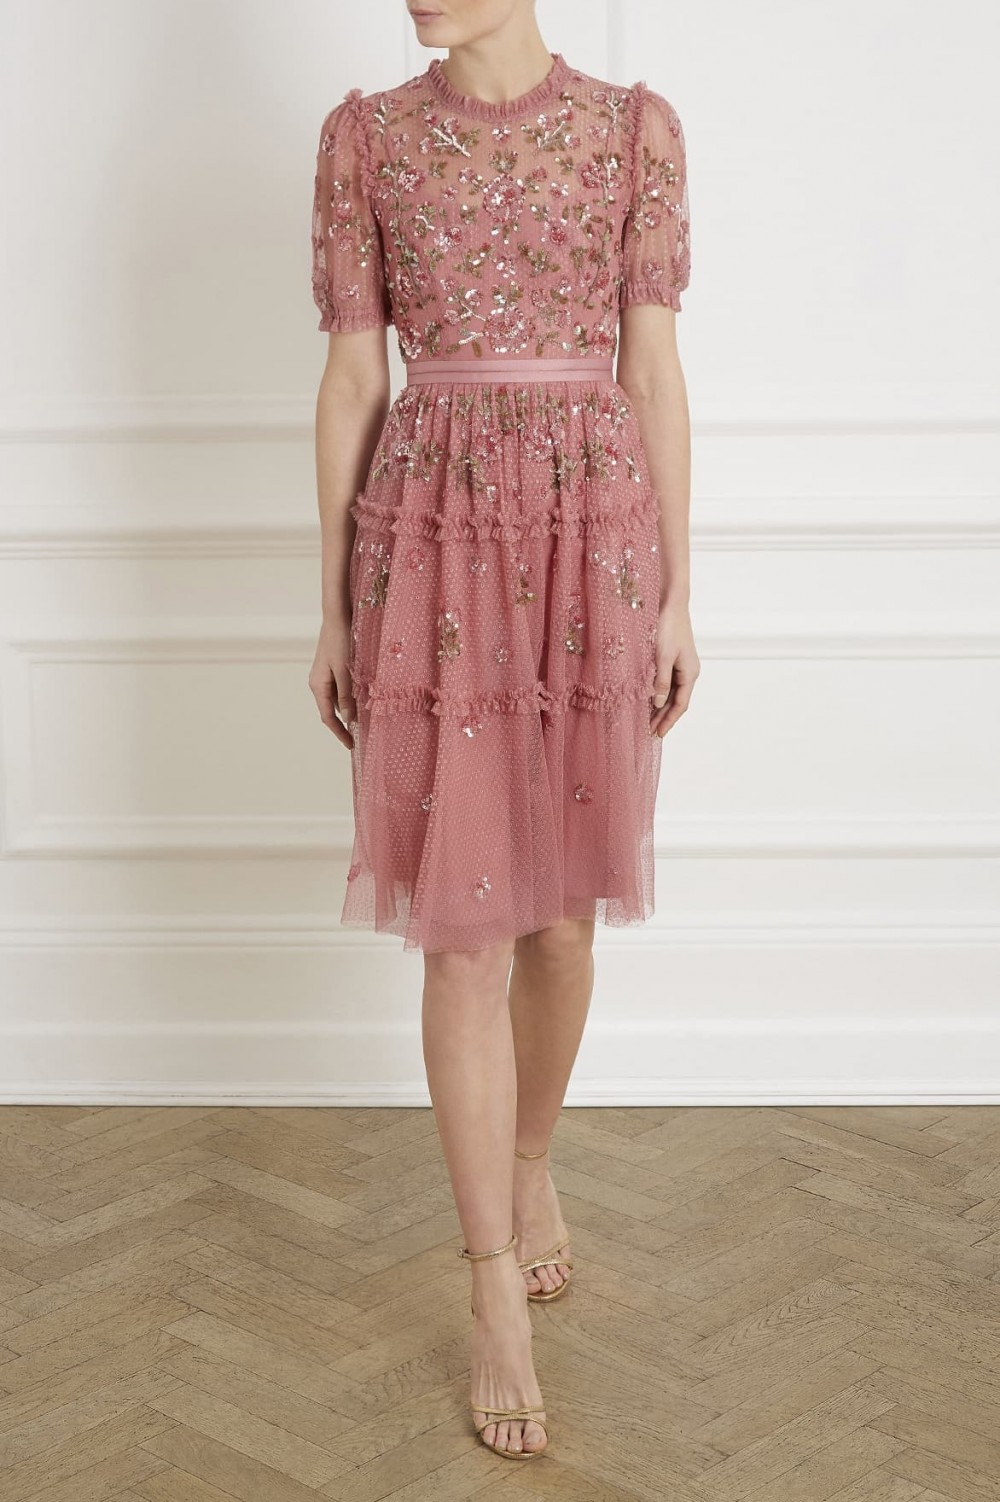 knee length capped sleeve pink lace floral dress